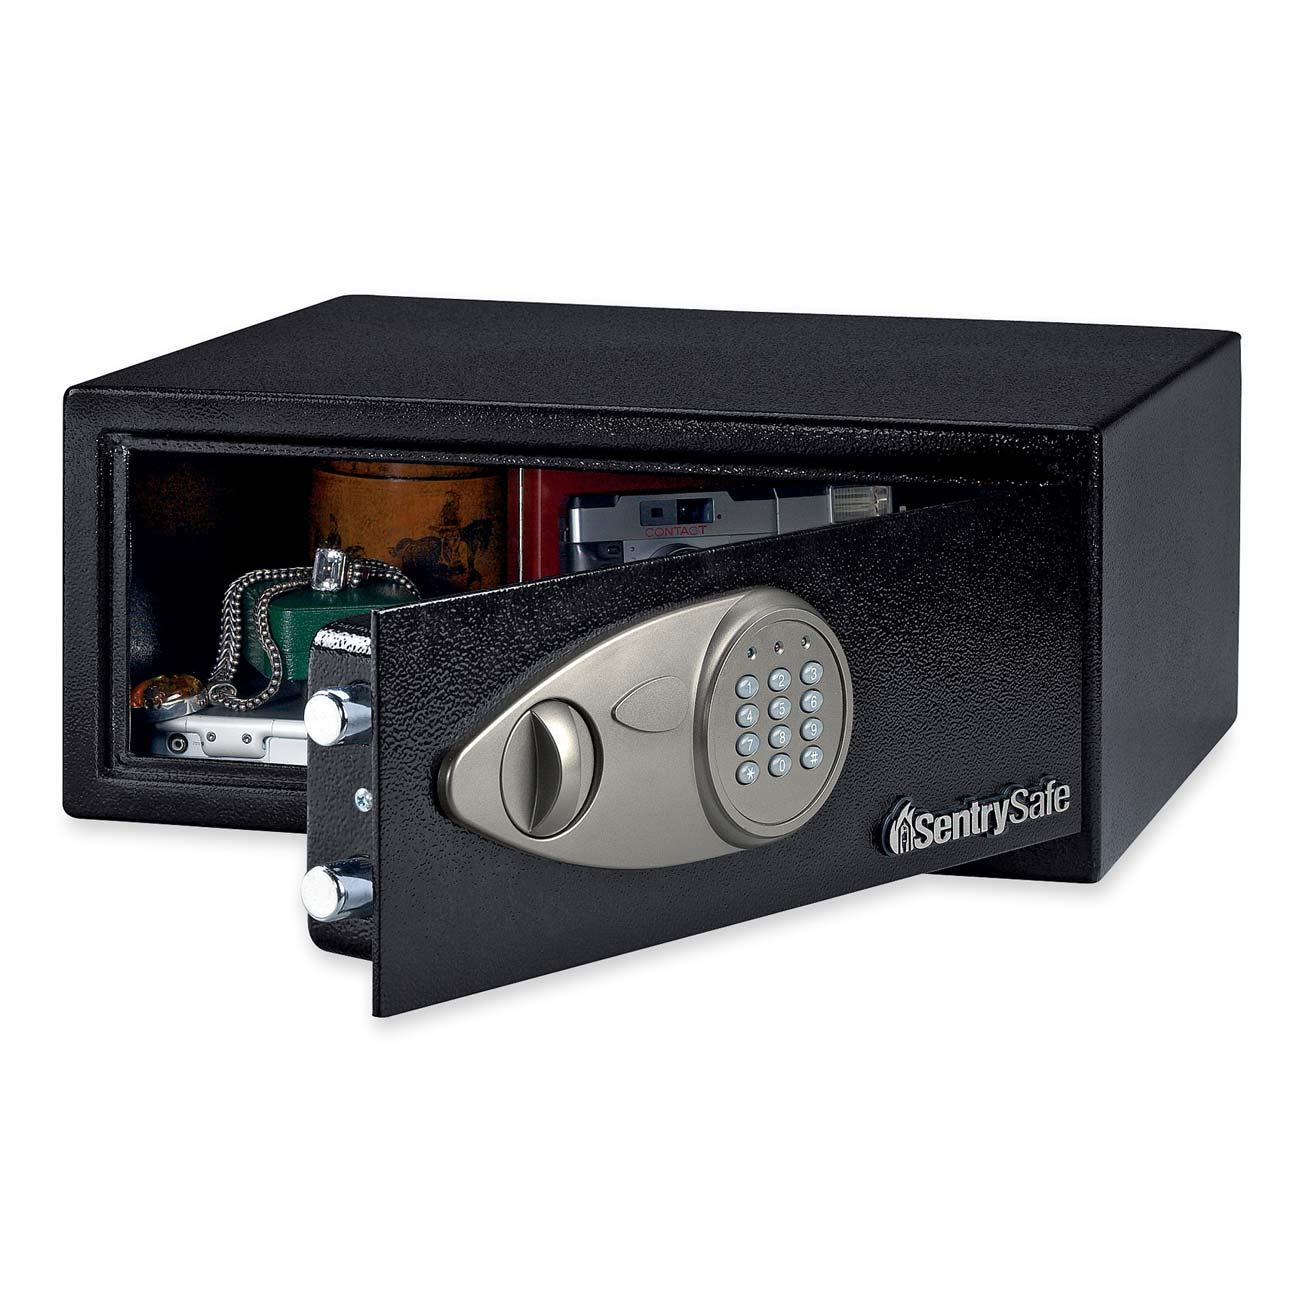 SentrySafe 0.7 cu. ft. Security Safe with Programmable Electronic Lock, X075